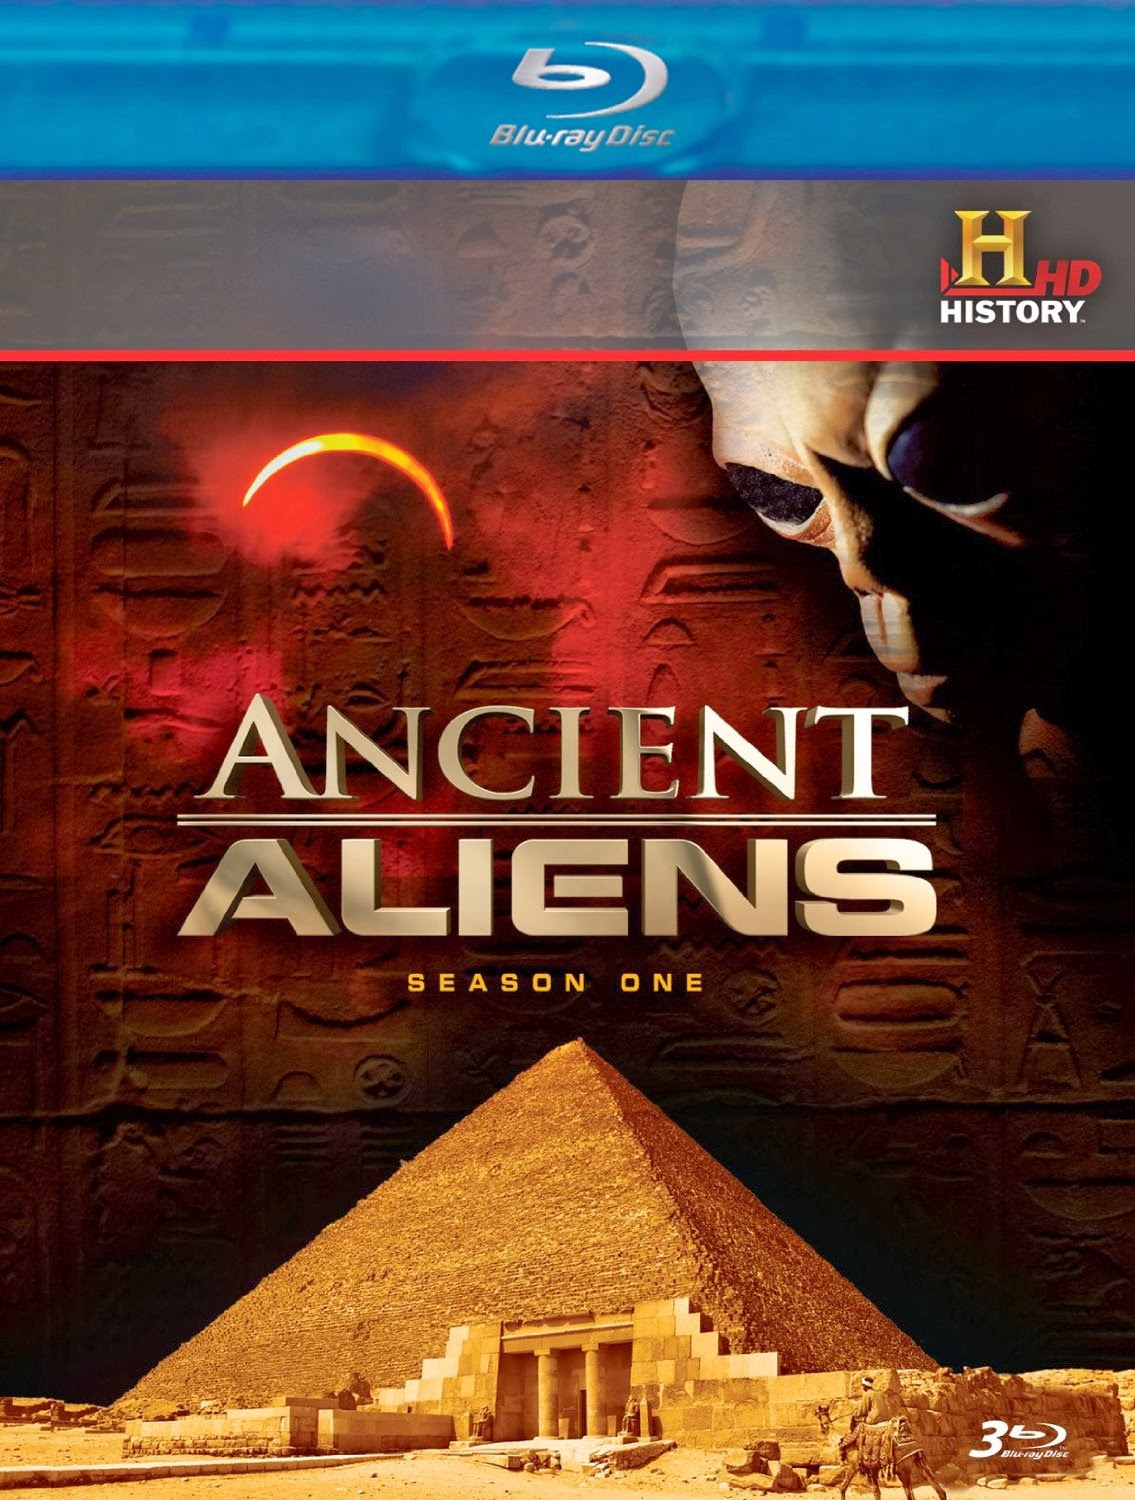 BUY Ancient Aliens: Season One [Blu-ray] (2010)